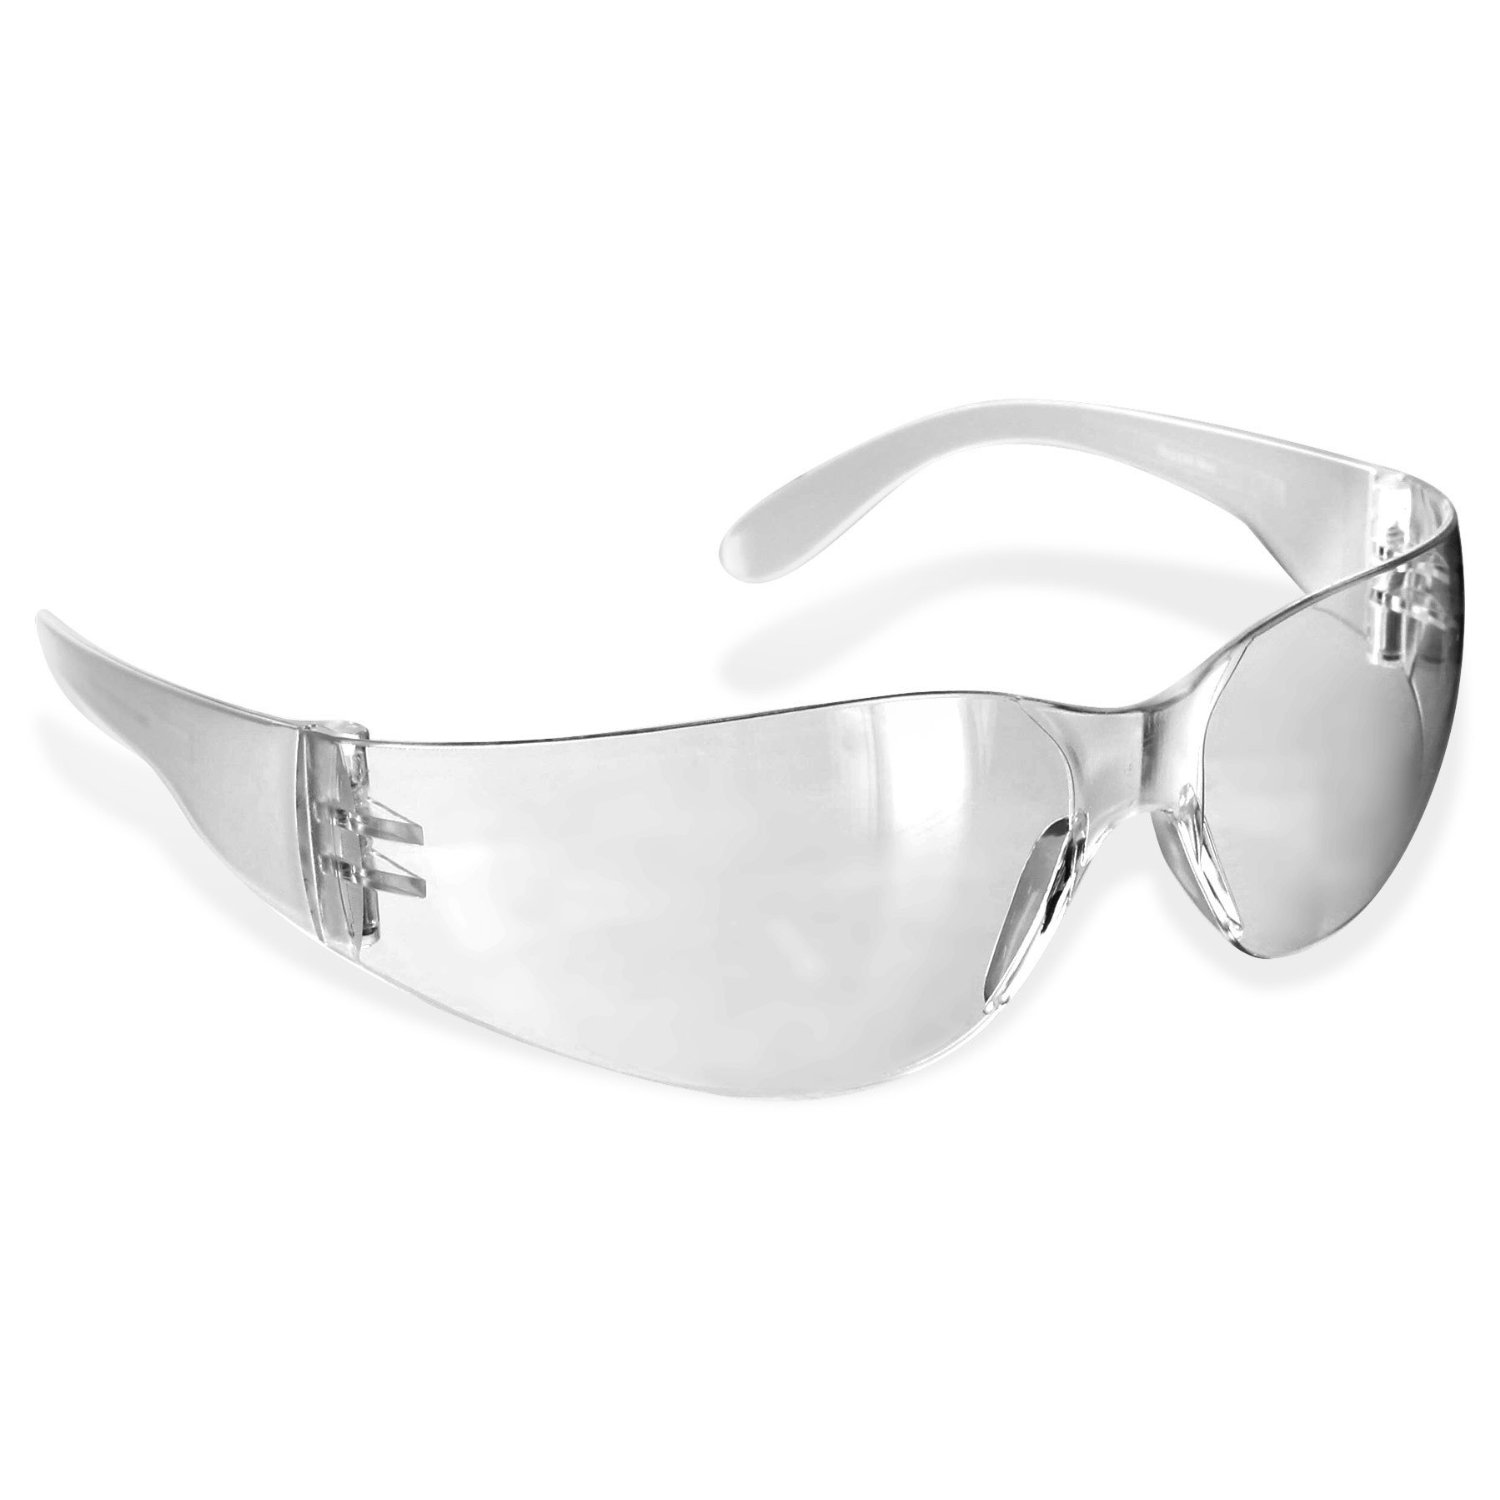 Super Light Clear ANSI Safety Glasses